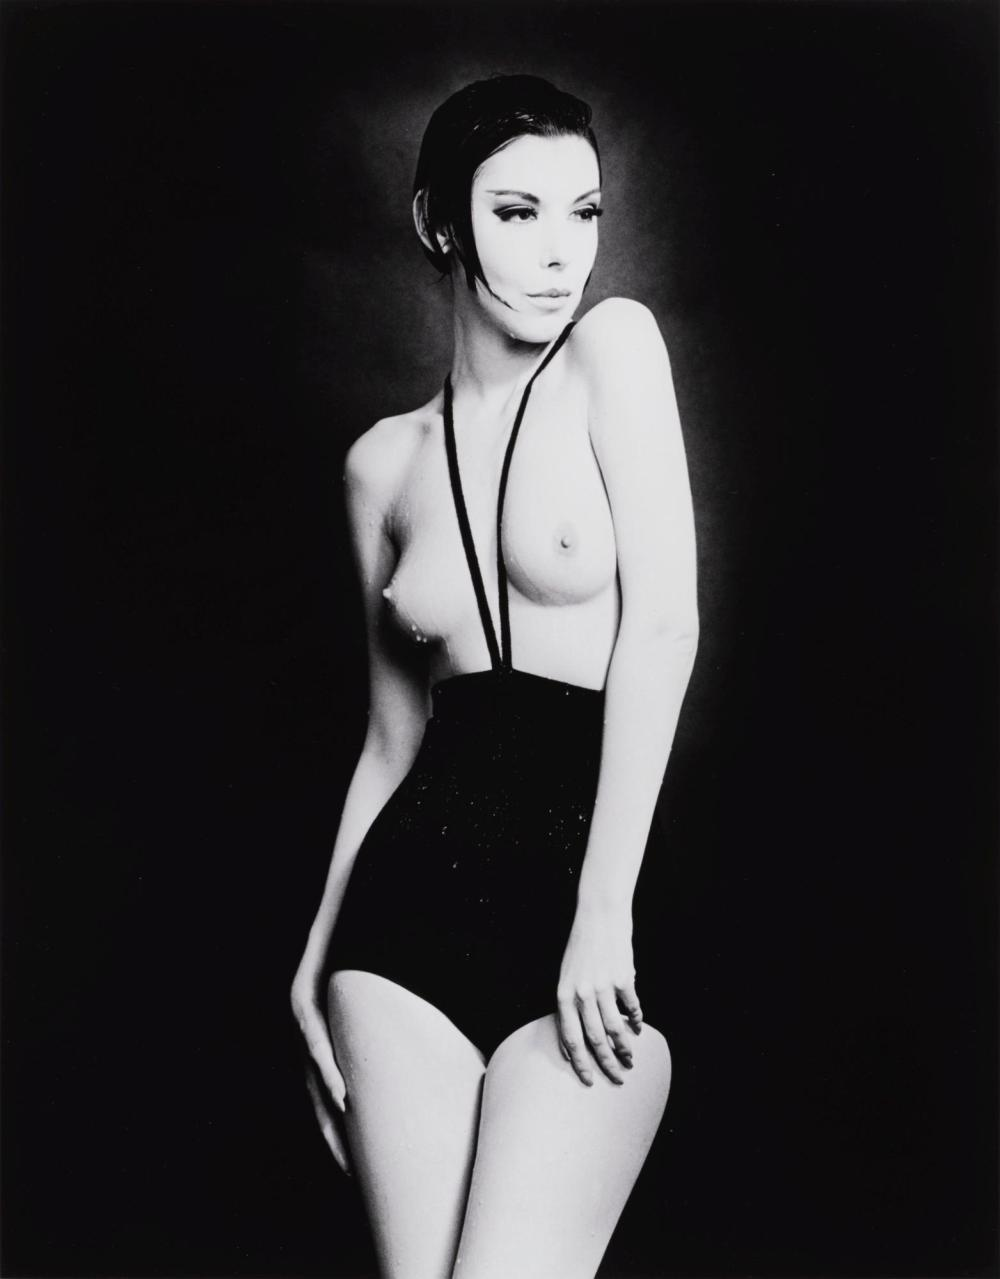 WILLIAM CLAXTON | Peggy Moffit in Rudi Gernreich's Topless Swimsuit, 1964